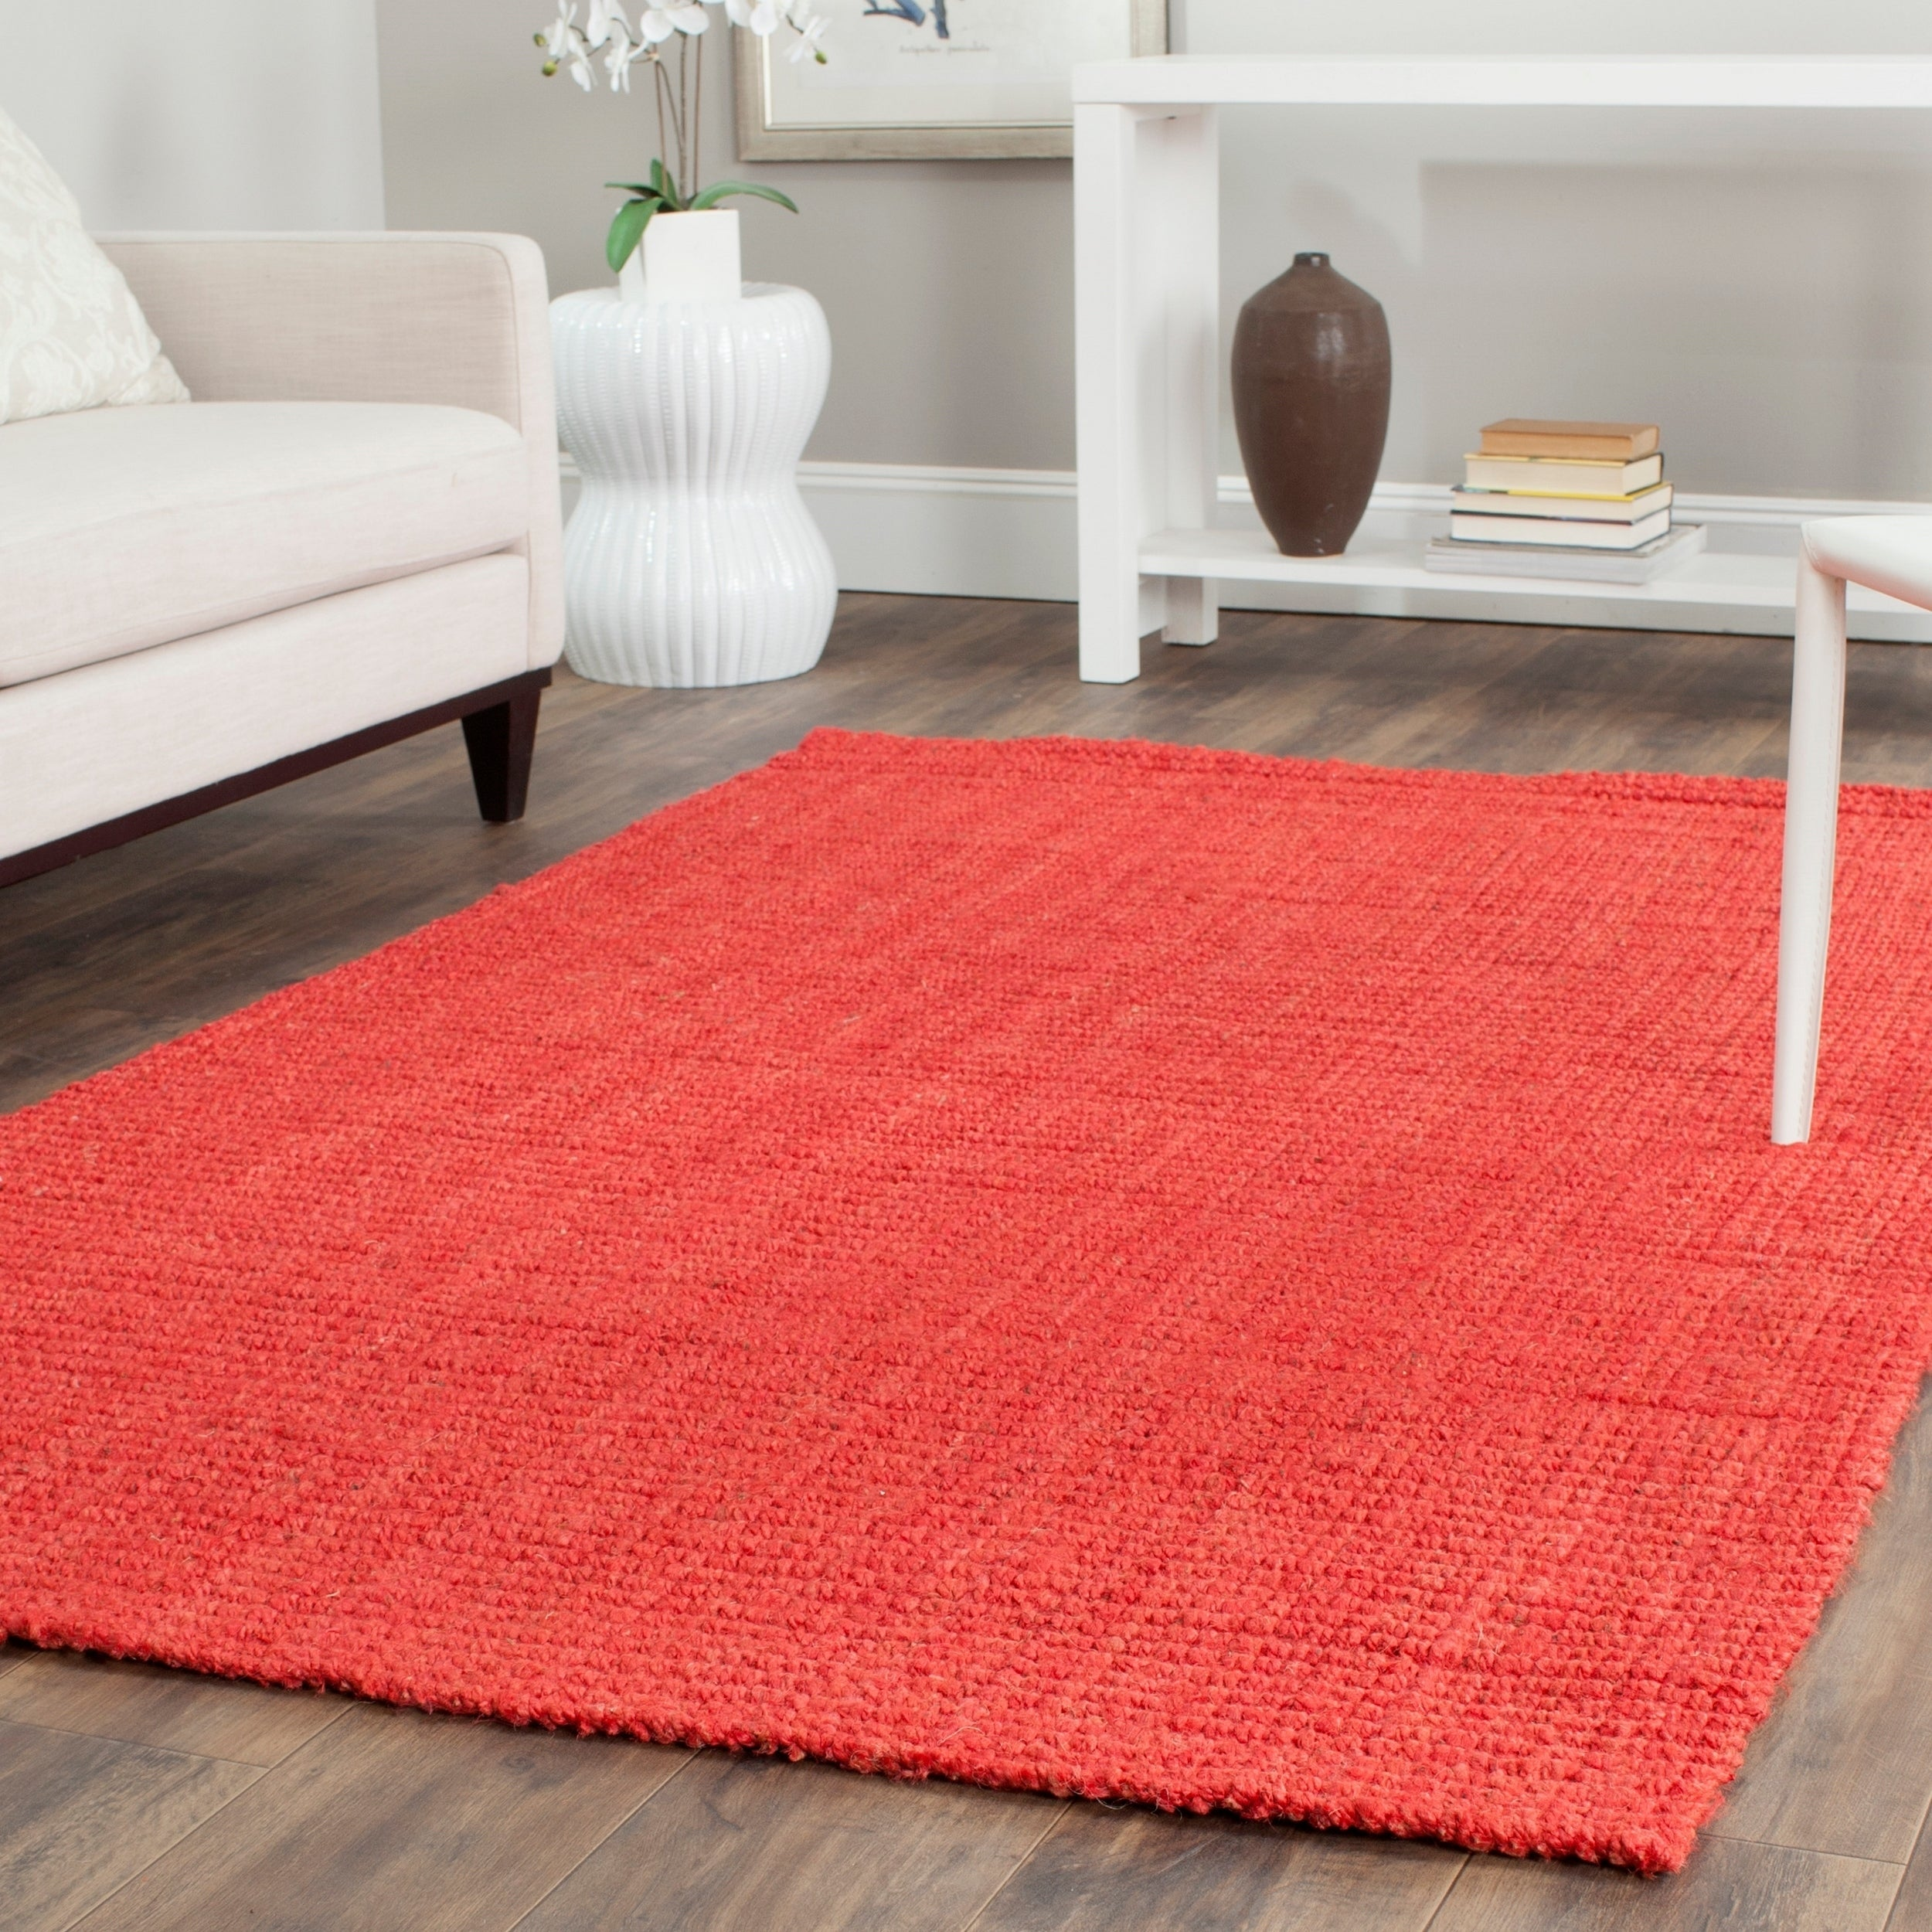 Safavieh Casual Natural Fiber Hand-loomed Sisal Style Red...